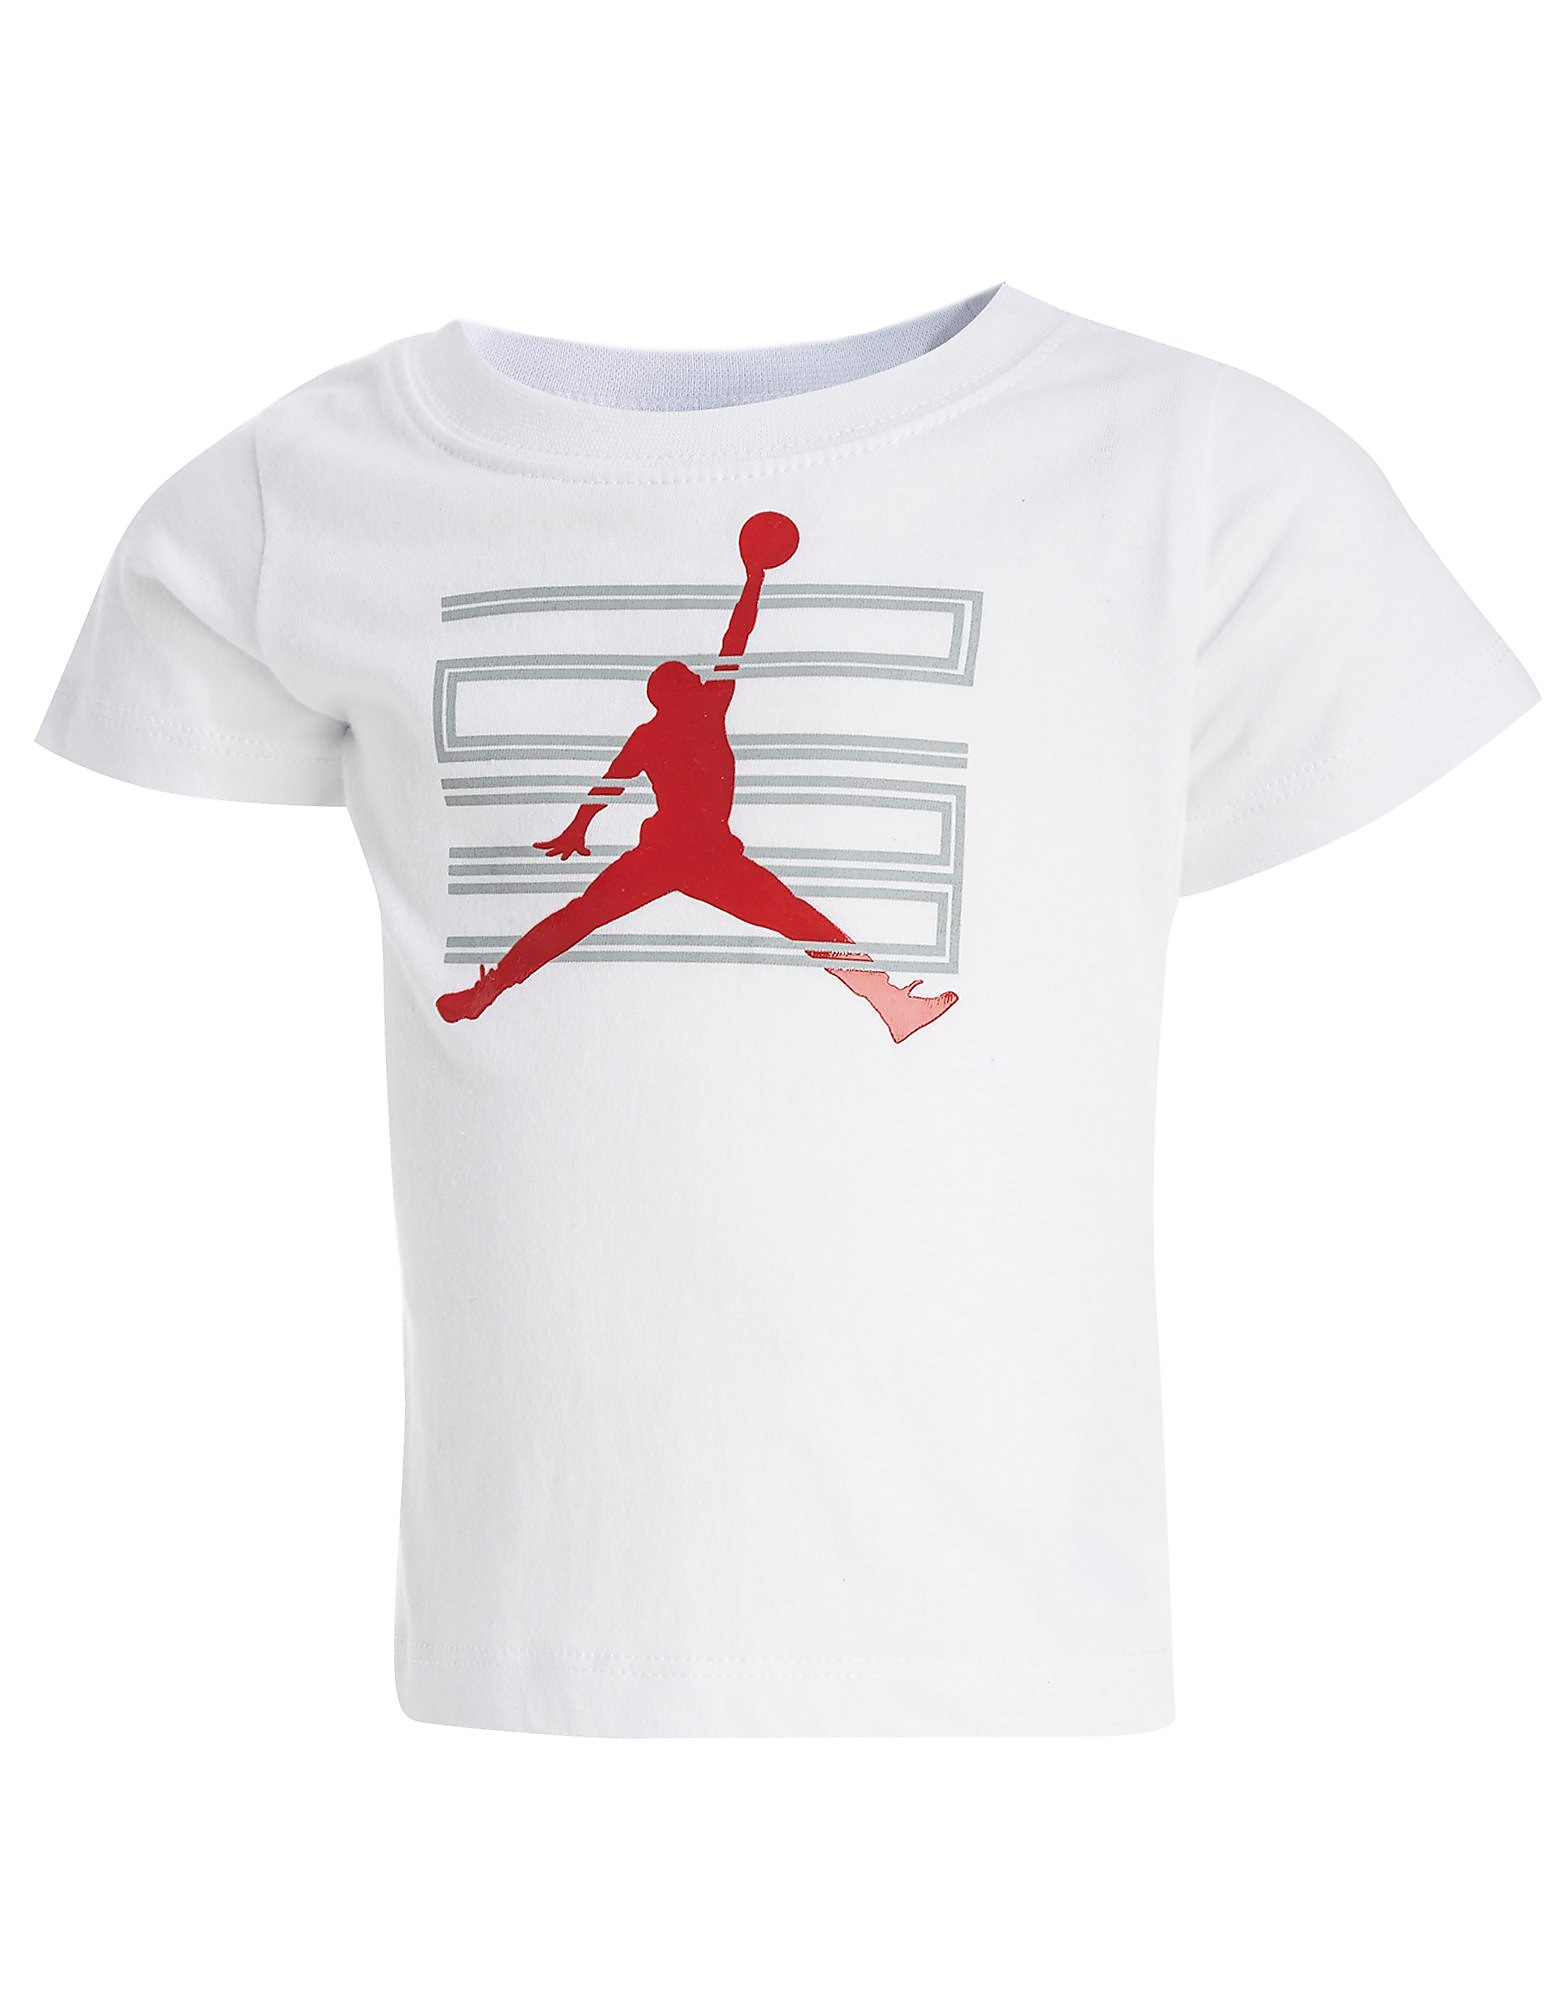 Jordan Air 11 T-Shirt Infant